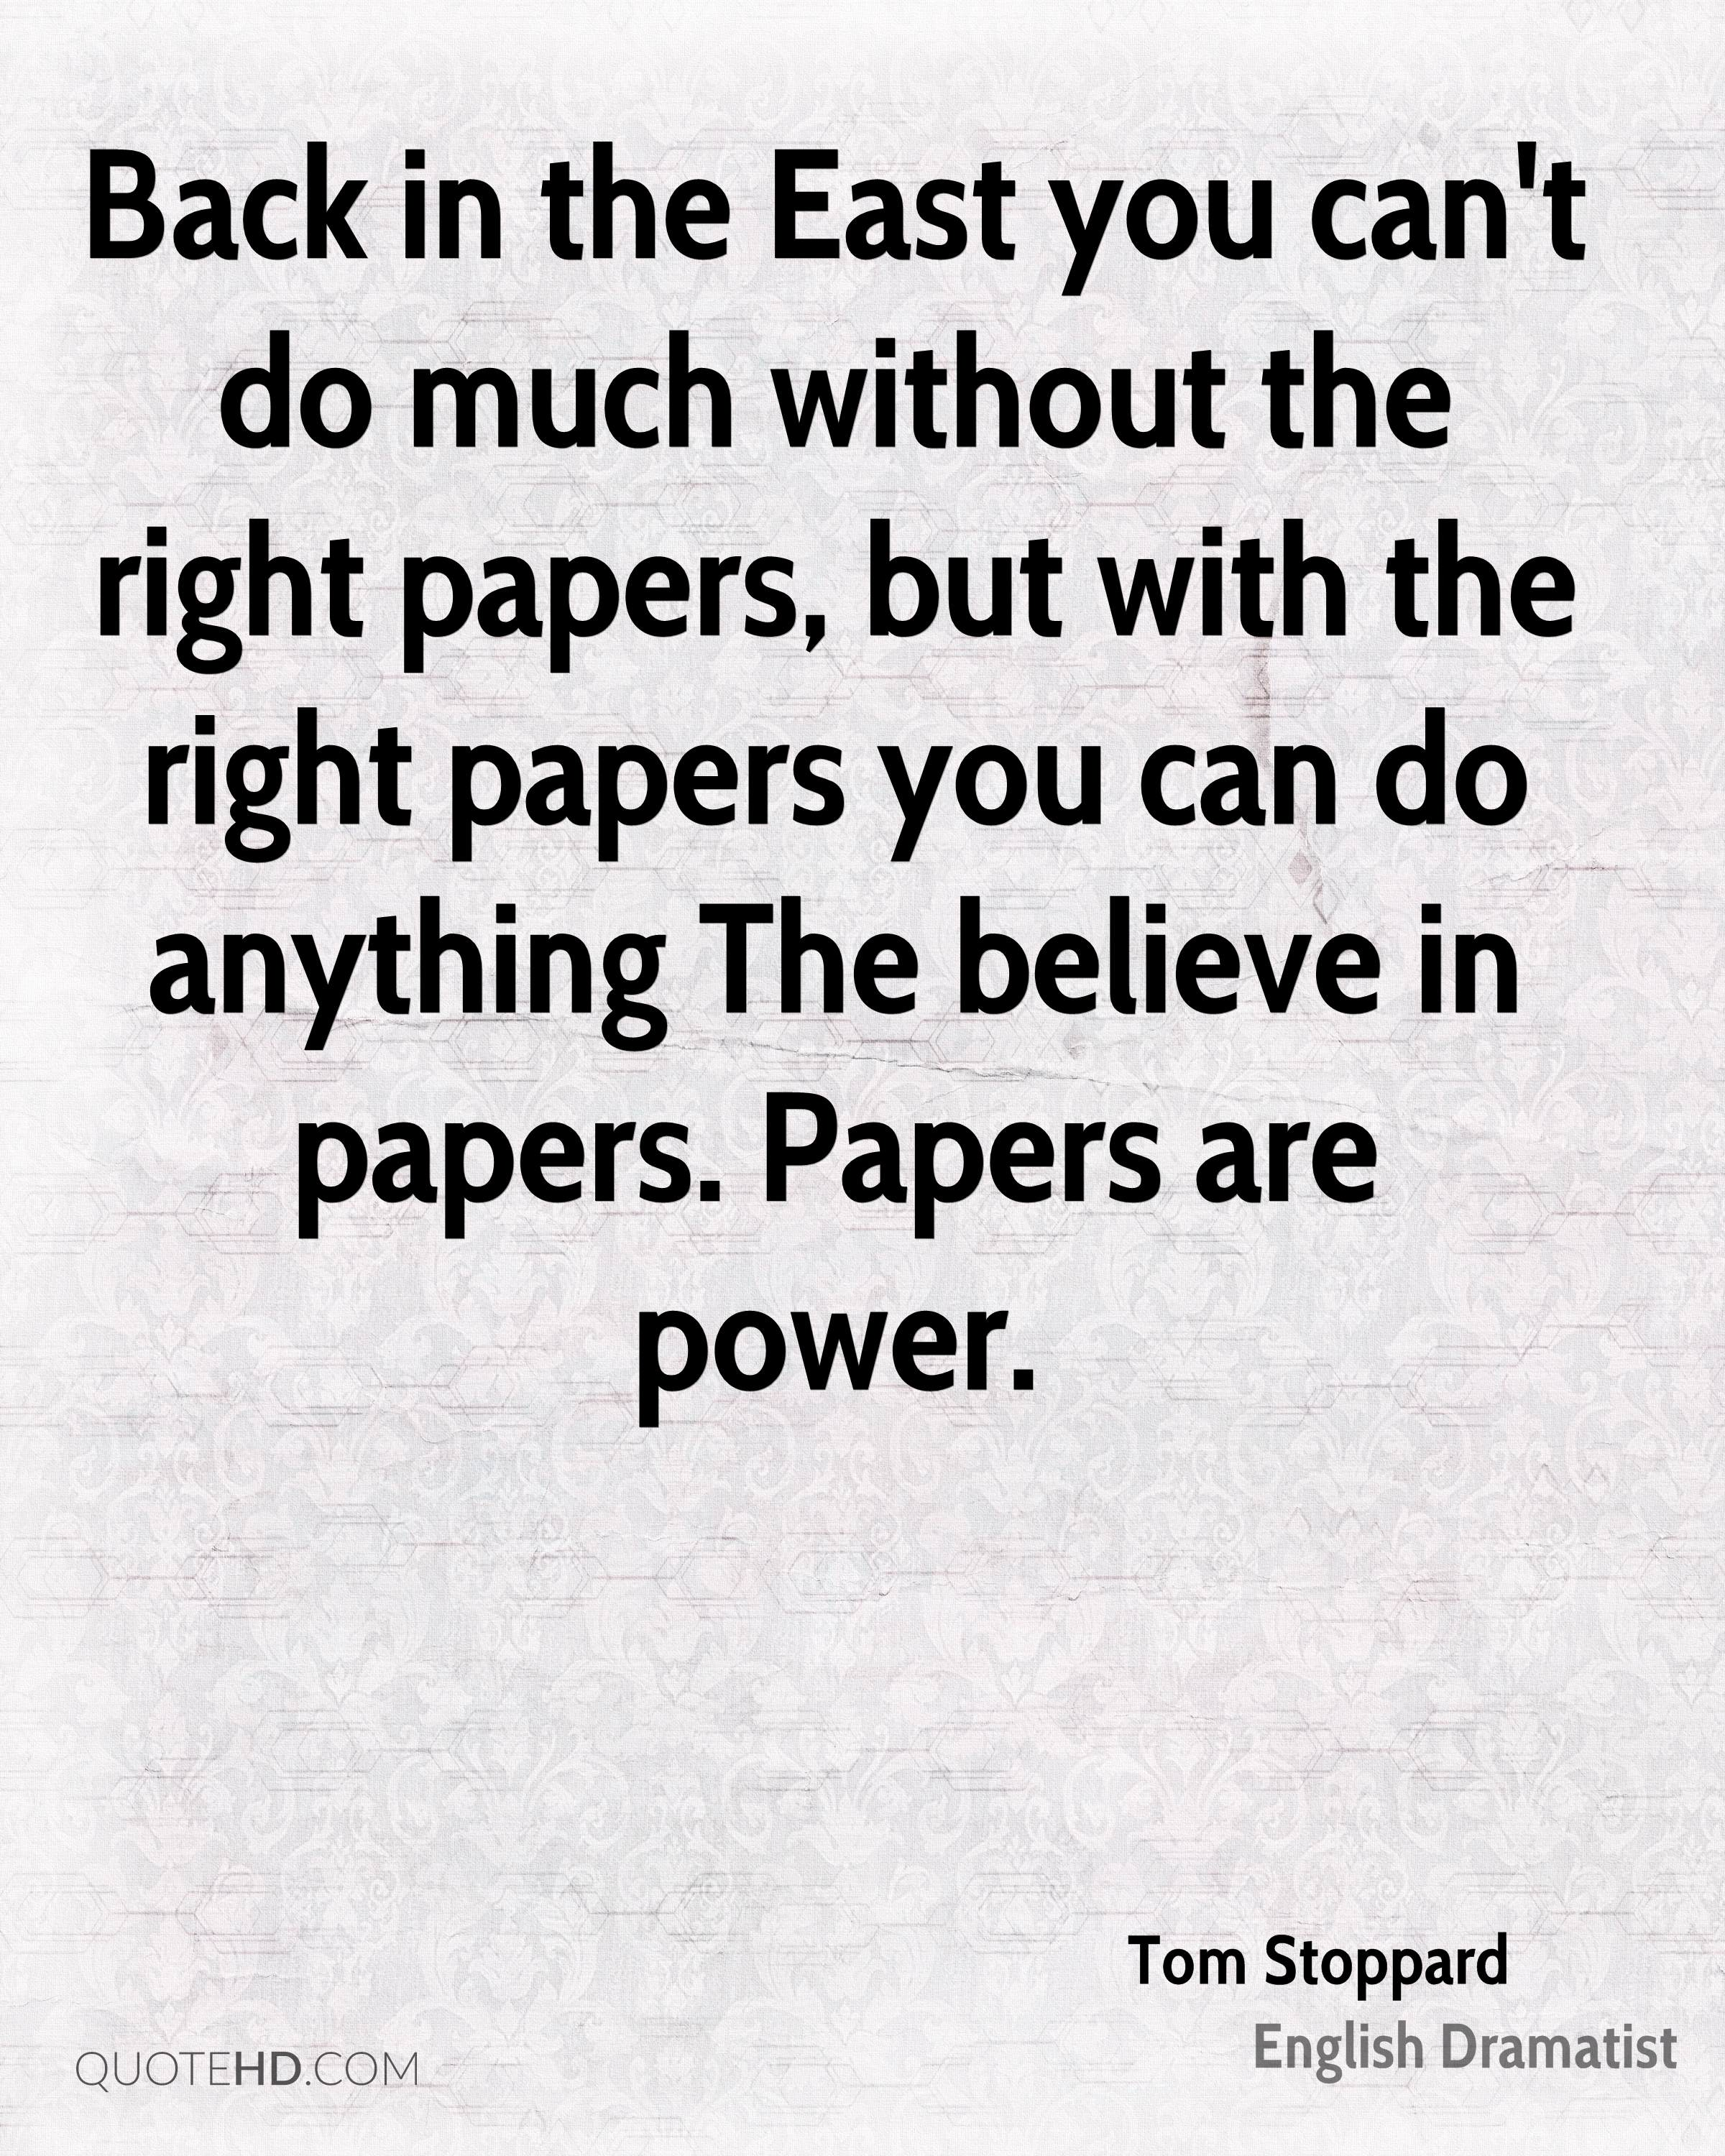 Back in the East you can't do much without the right papers, but with the right papers you can do anything The believe in papers. Papers are power.